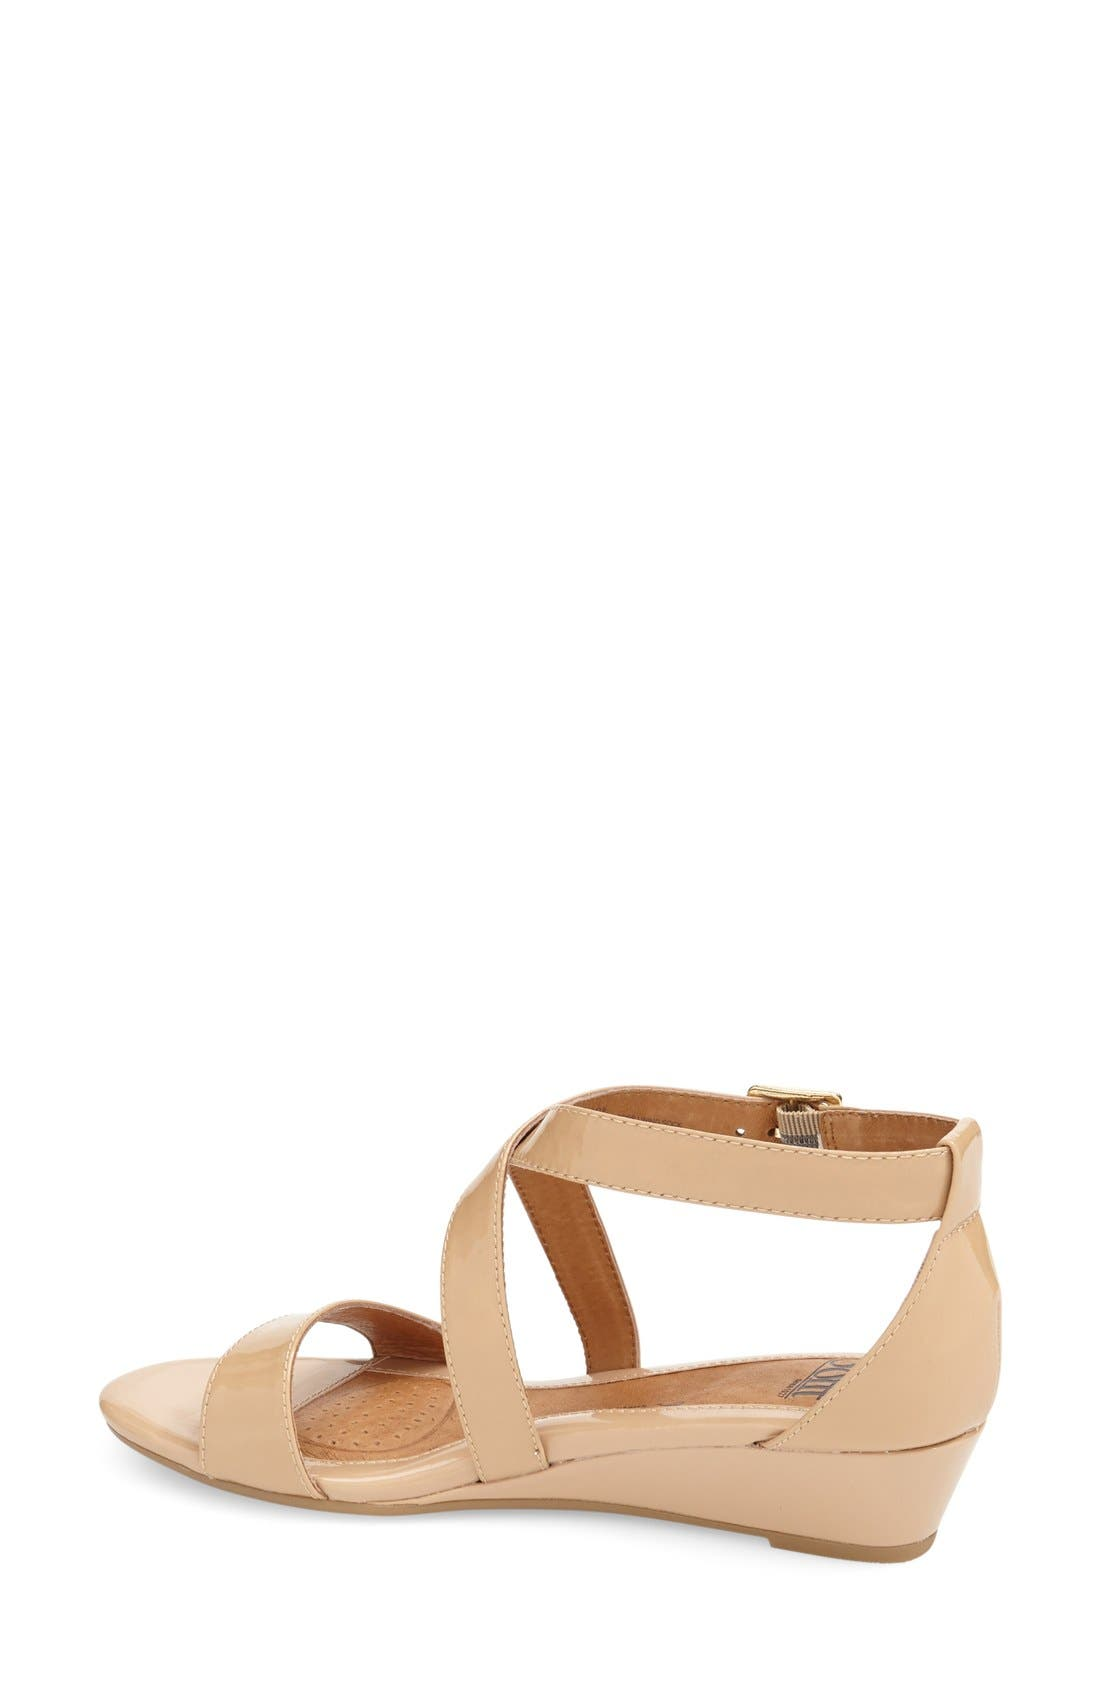 'Innis' Low Wedge Sandal,                             Alternate thumbnail 20, color,